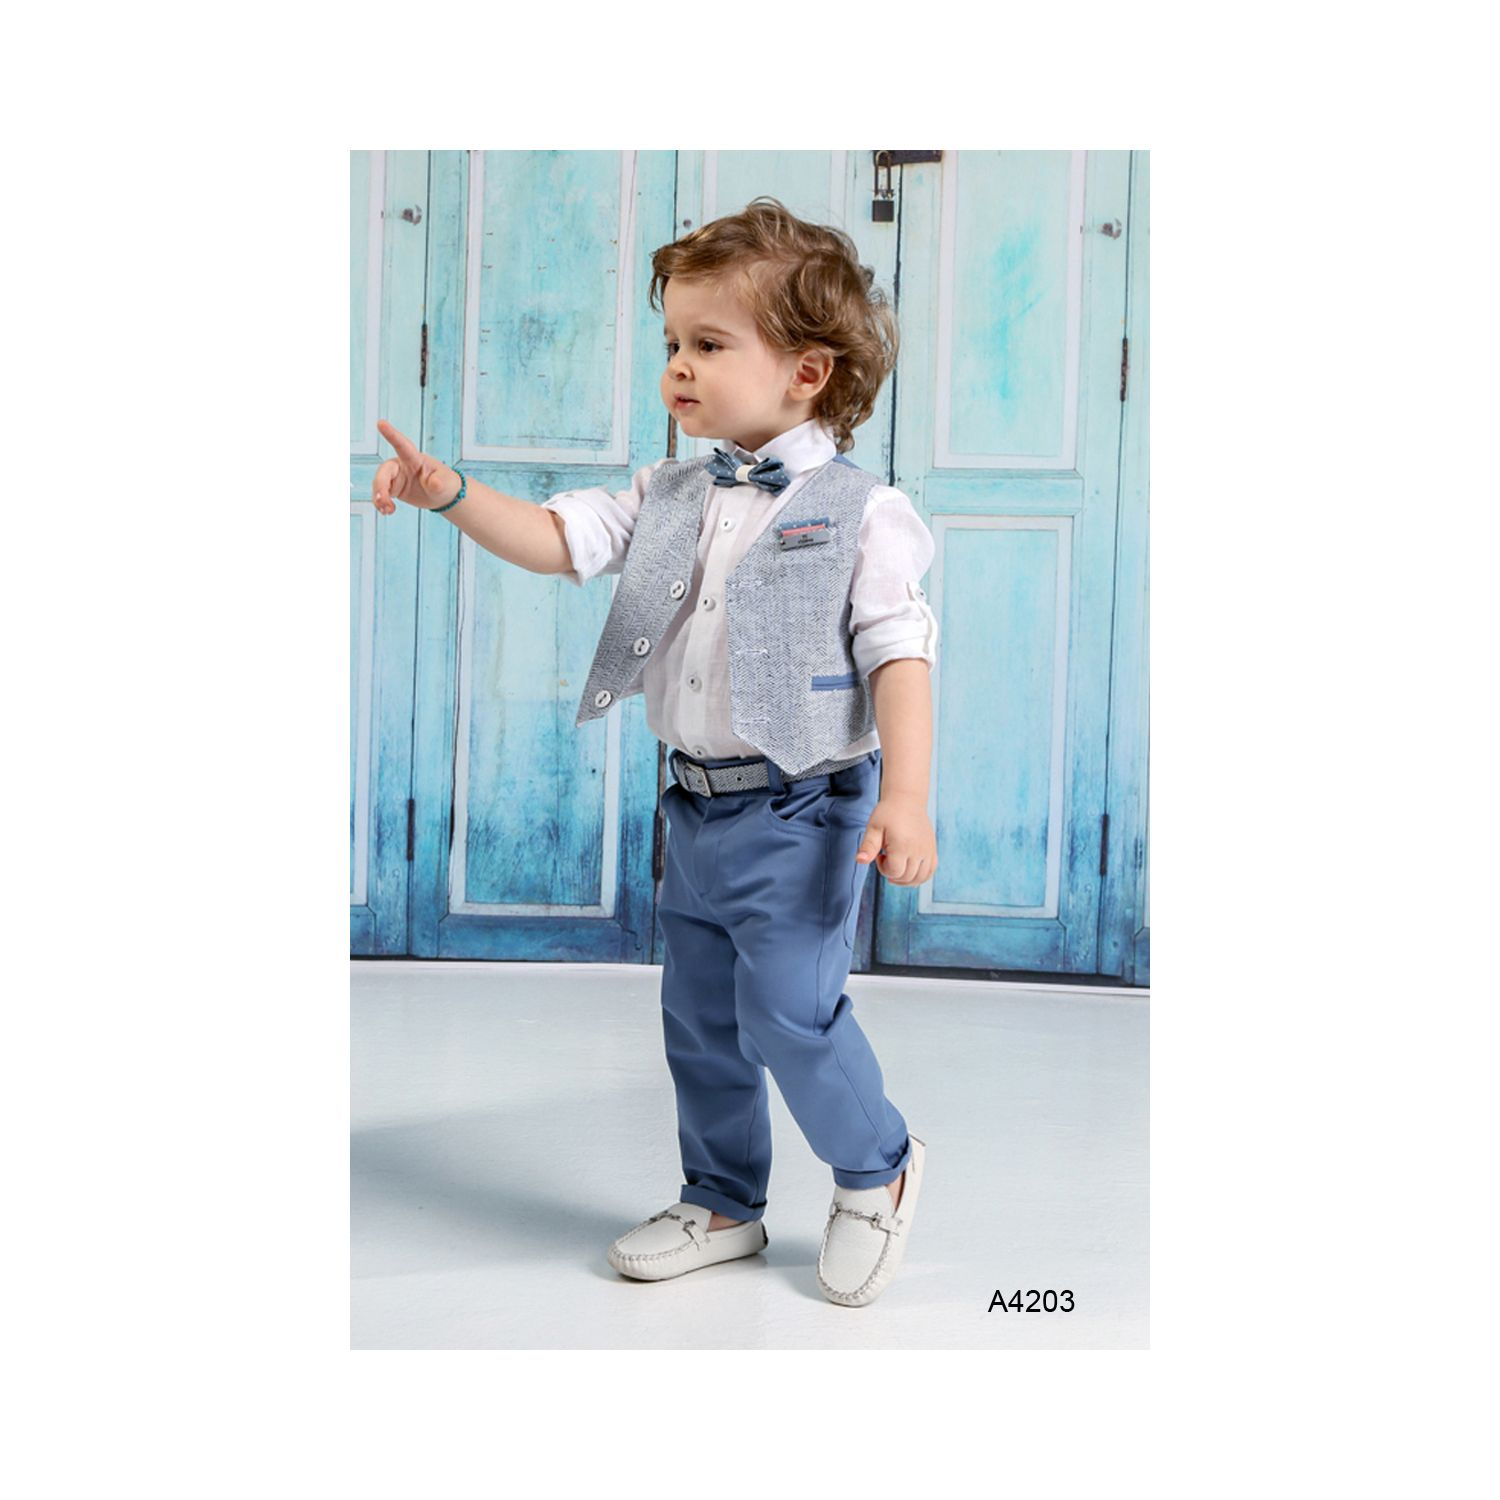 Blue jean baptism suit for boy A4203